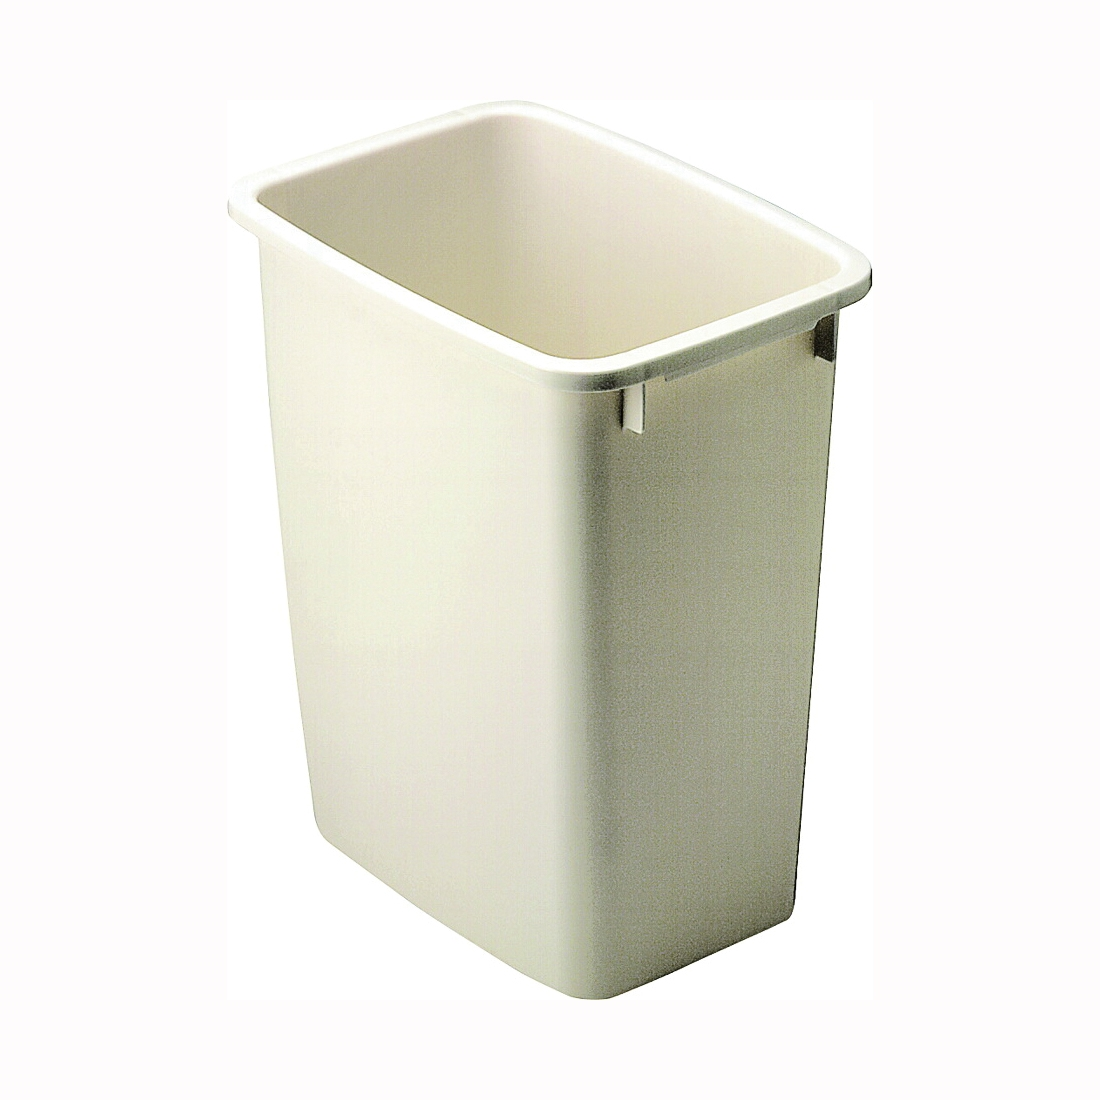 Picture of Rubbermaid FG280500BISQU Waste Basket, 21 qt Capacity, Rectangular, Plastic, Bisque, 9 in W, 12.9 in D, 15 in H